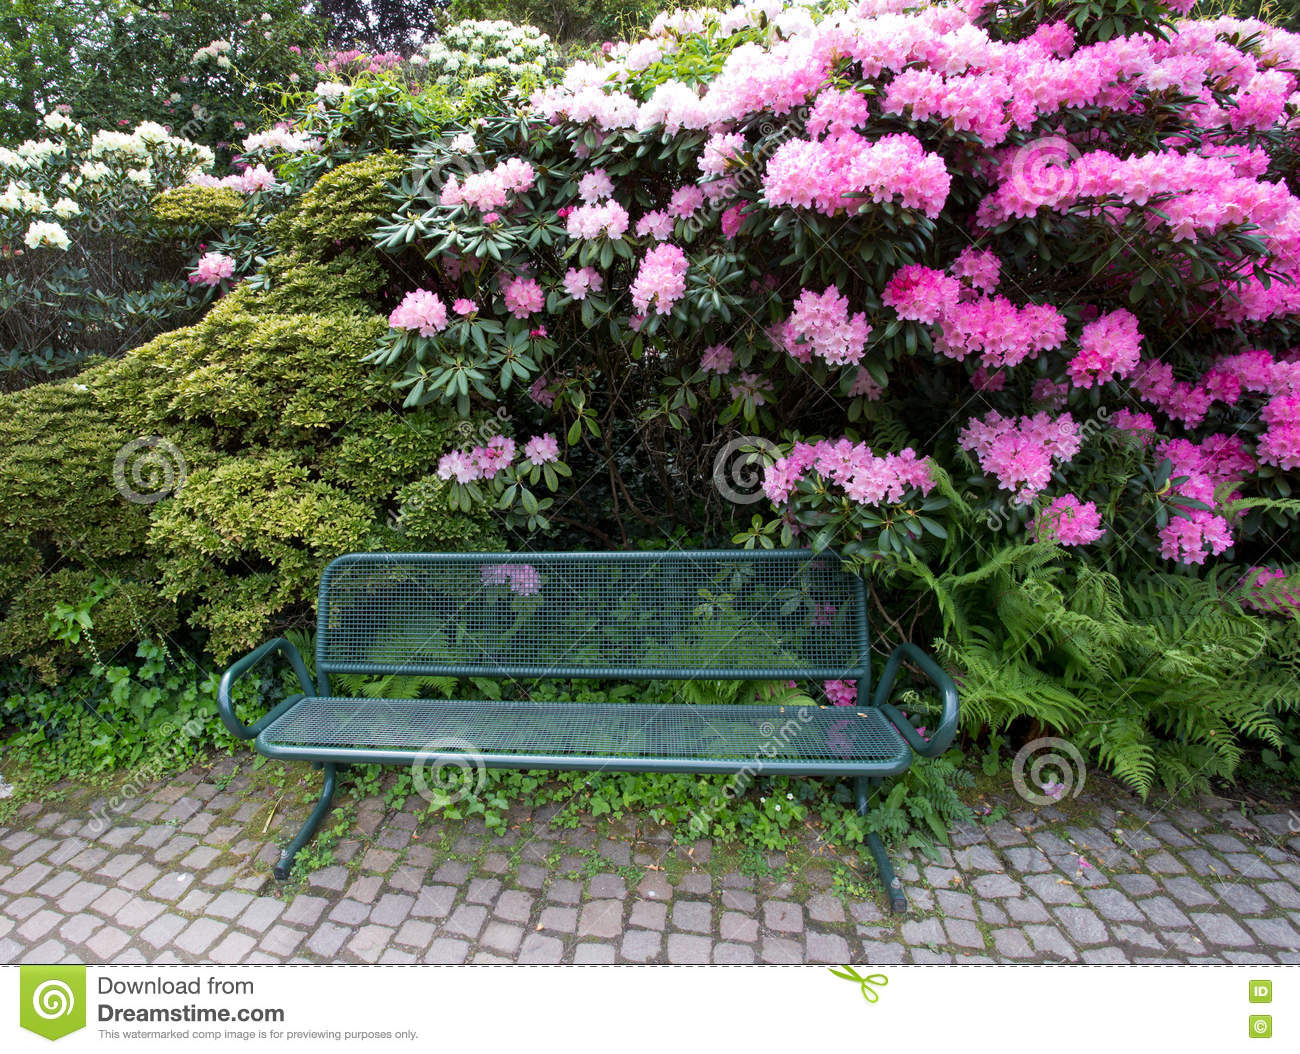 Bench in front of plants and flowers stock image image of natural bench in front of plants and flowers izmirmasajfo